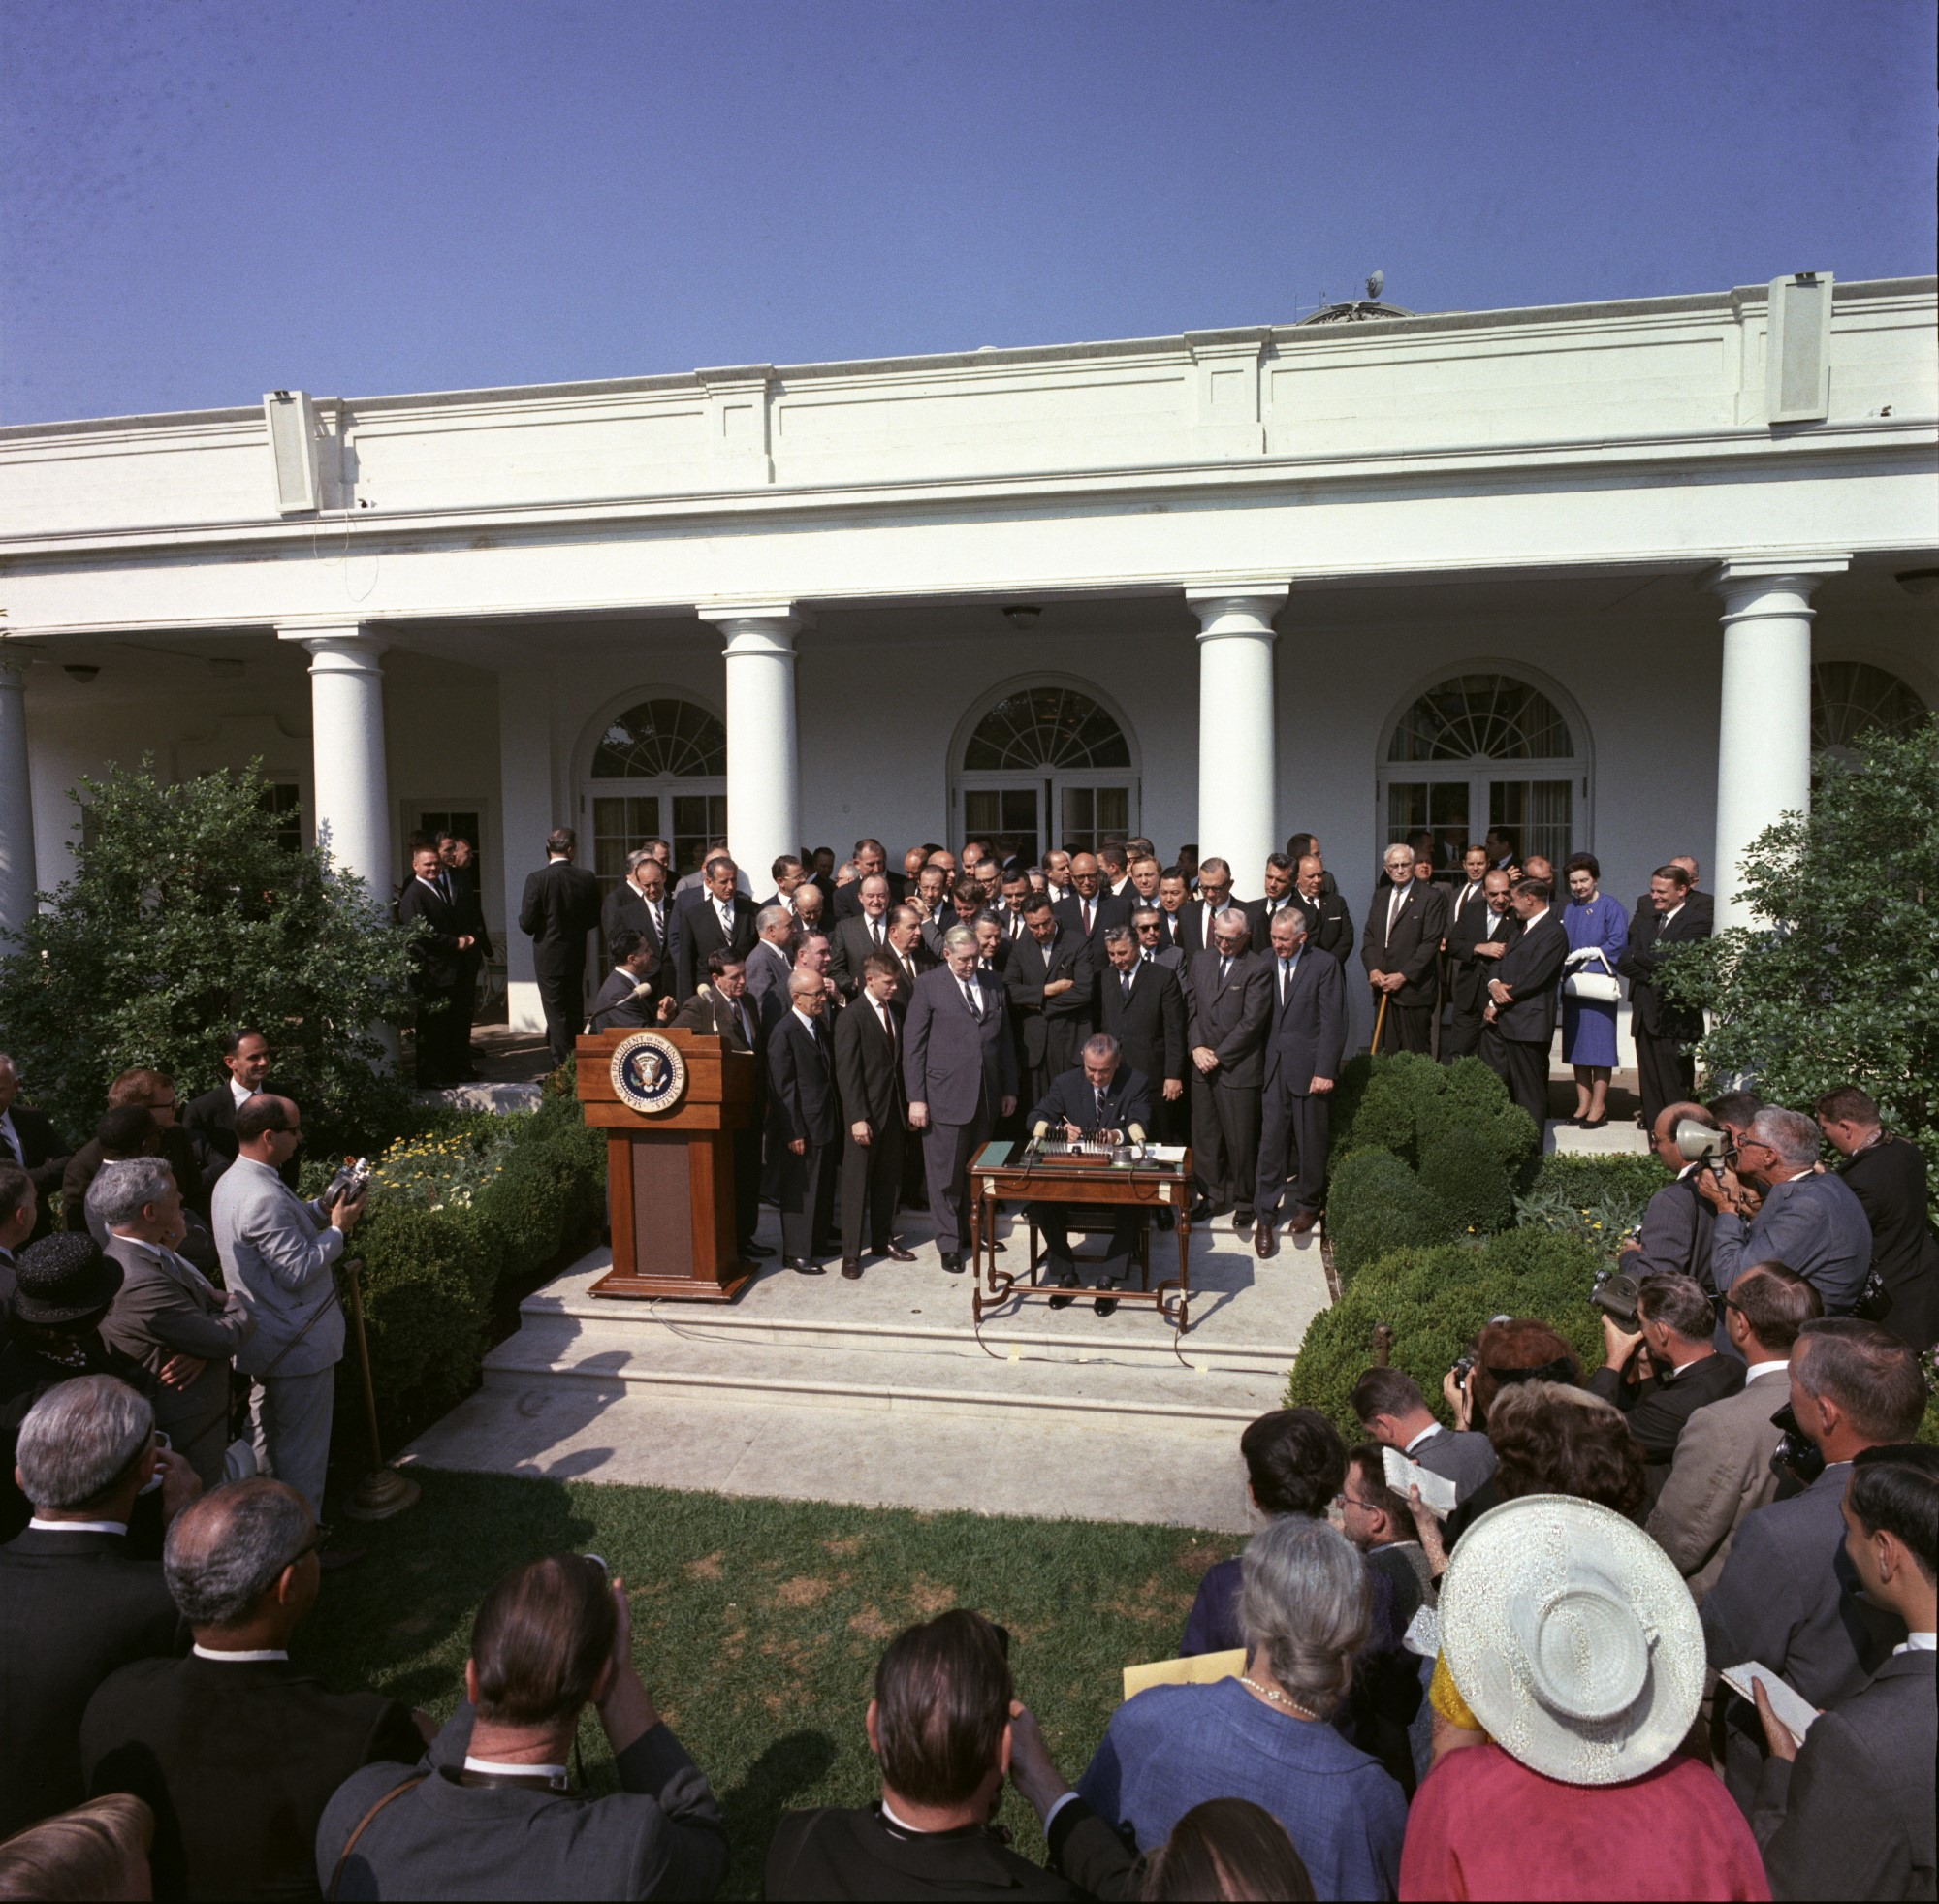 President Johnson signs the Economic Opportunity Act on August 20, 1964. The Act created the Office of Economic Opportunity (OEO), which oversaw many of the War on Poverty programs.